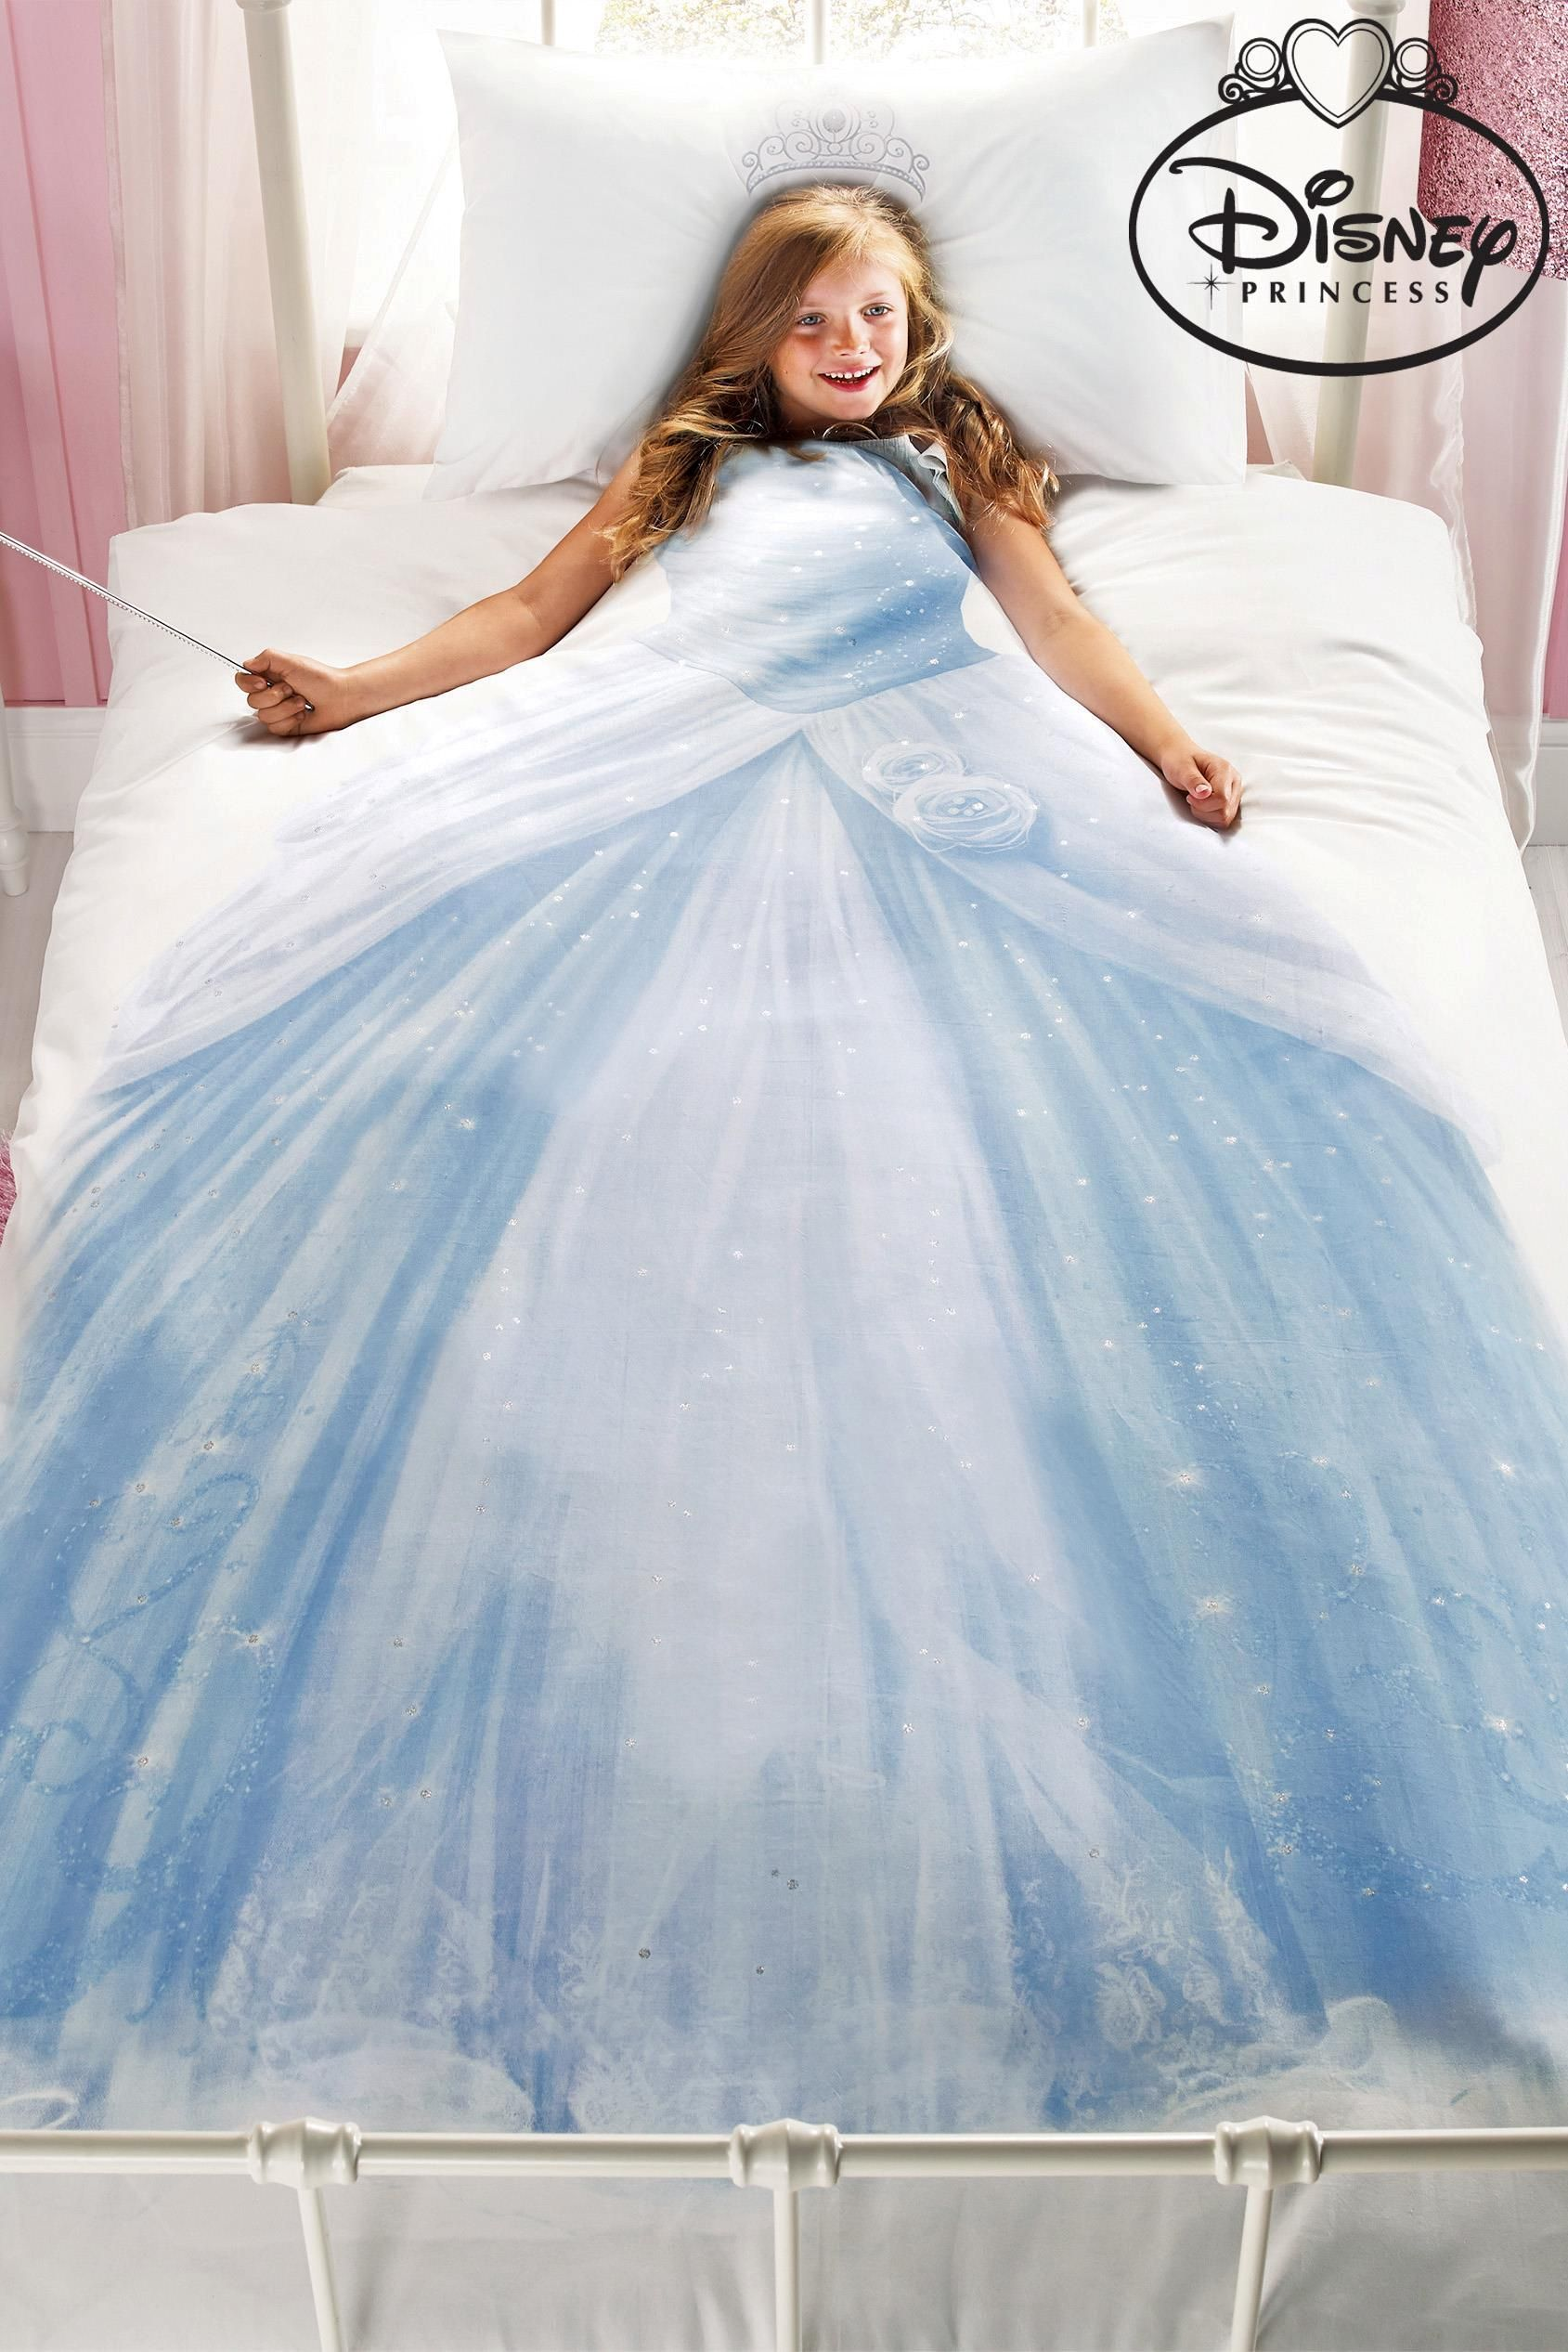 Castles and Rainbow wall mural cinderella princess bedding | Princess room  | Pinterest | Rainbow wall, Cinderella princess and Wall murals